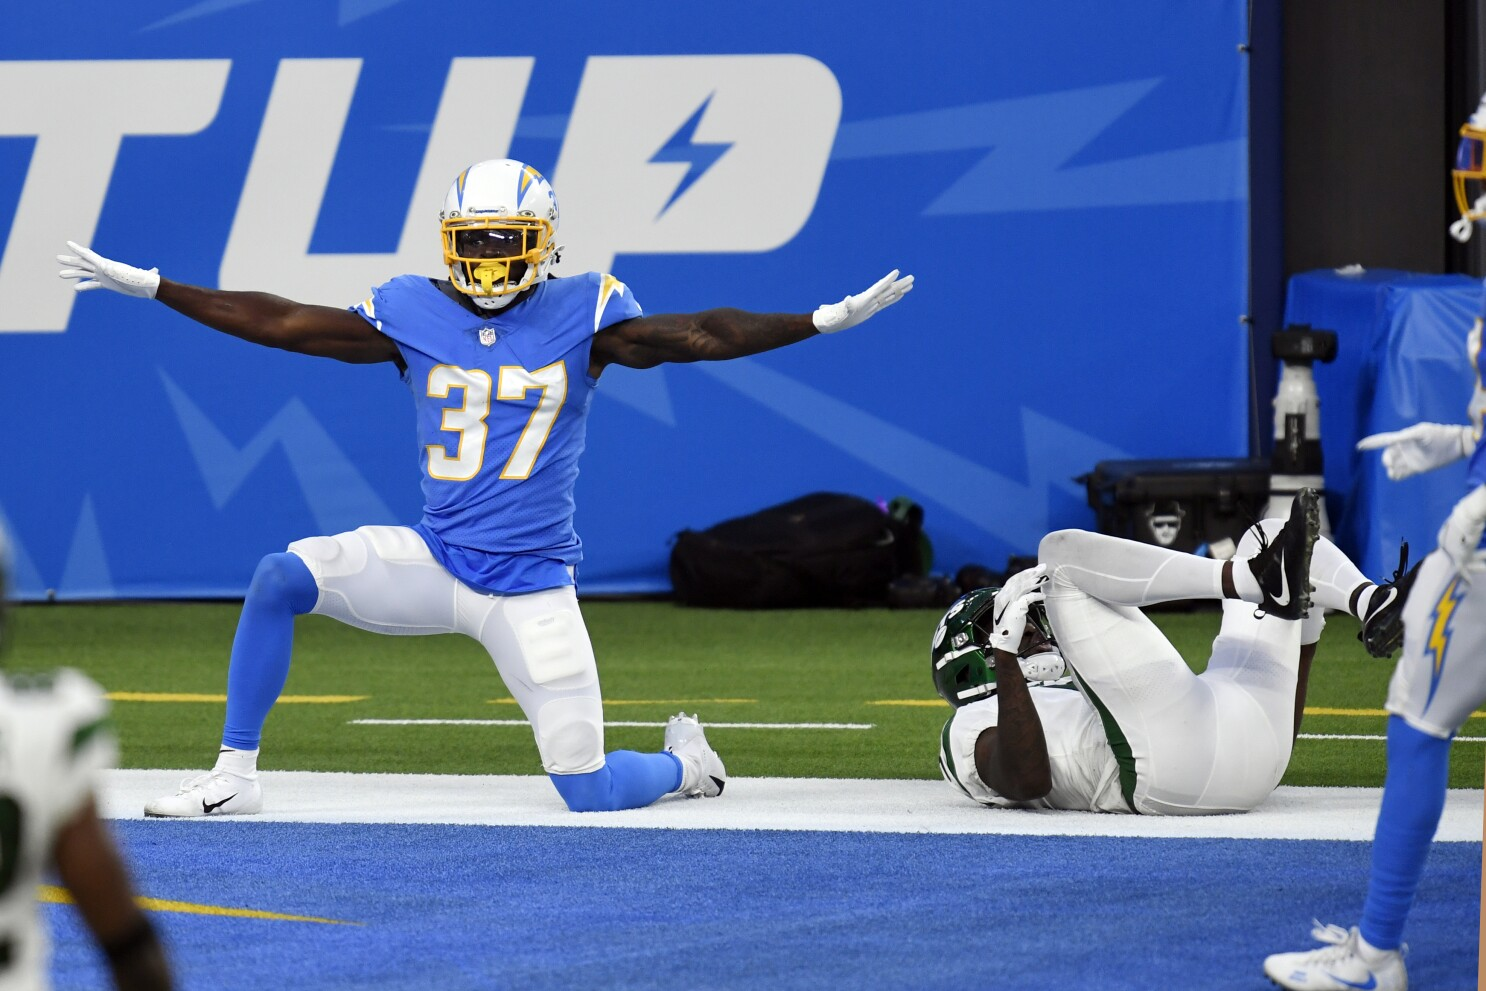 Tevaughn Campbell scores TD, stops another to save Chargers - Los Angeles  Times